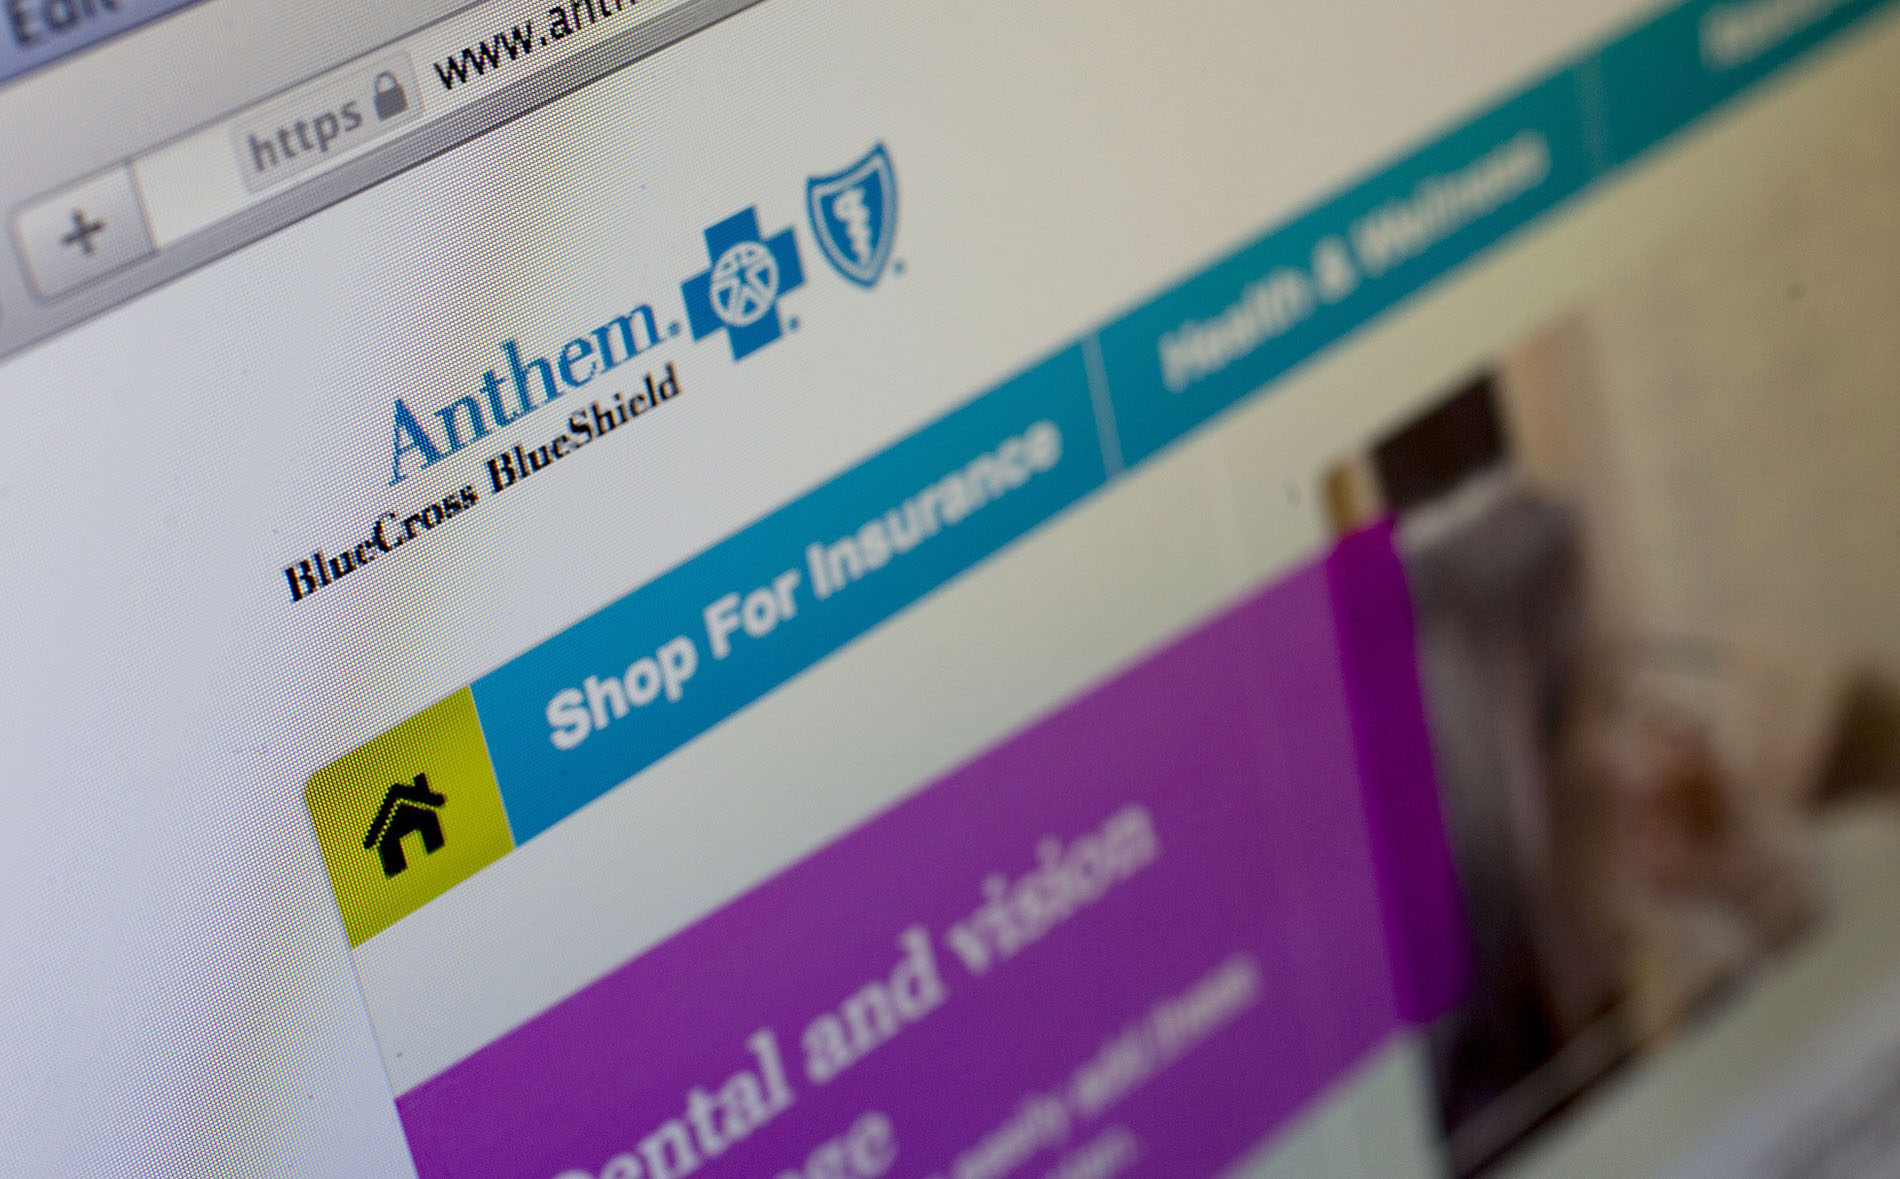 Anthem, Aetna Sued by U.S. Seeking to Block Mergers